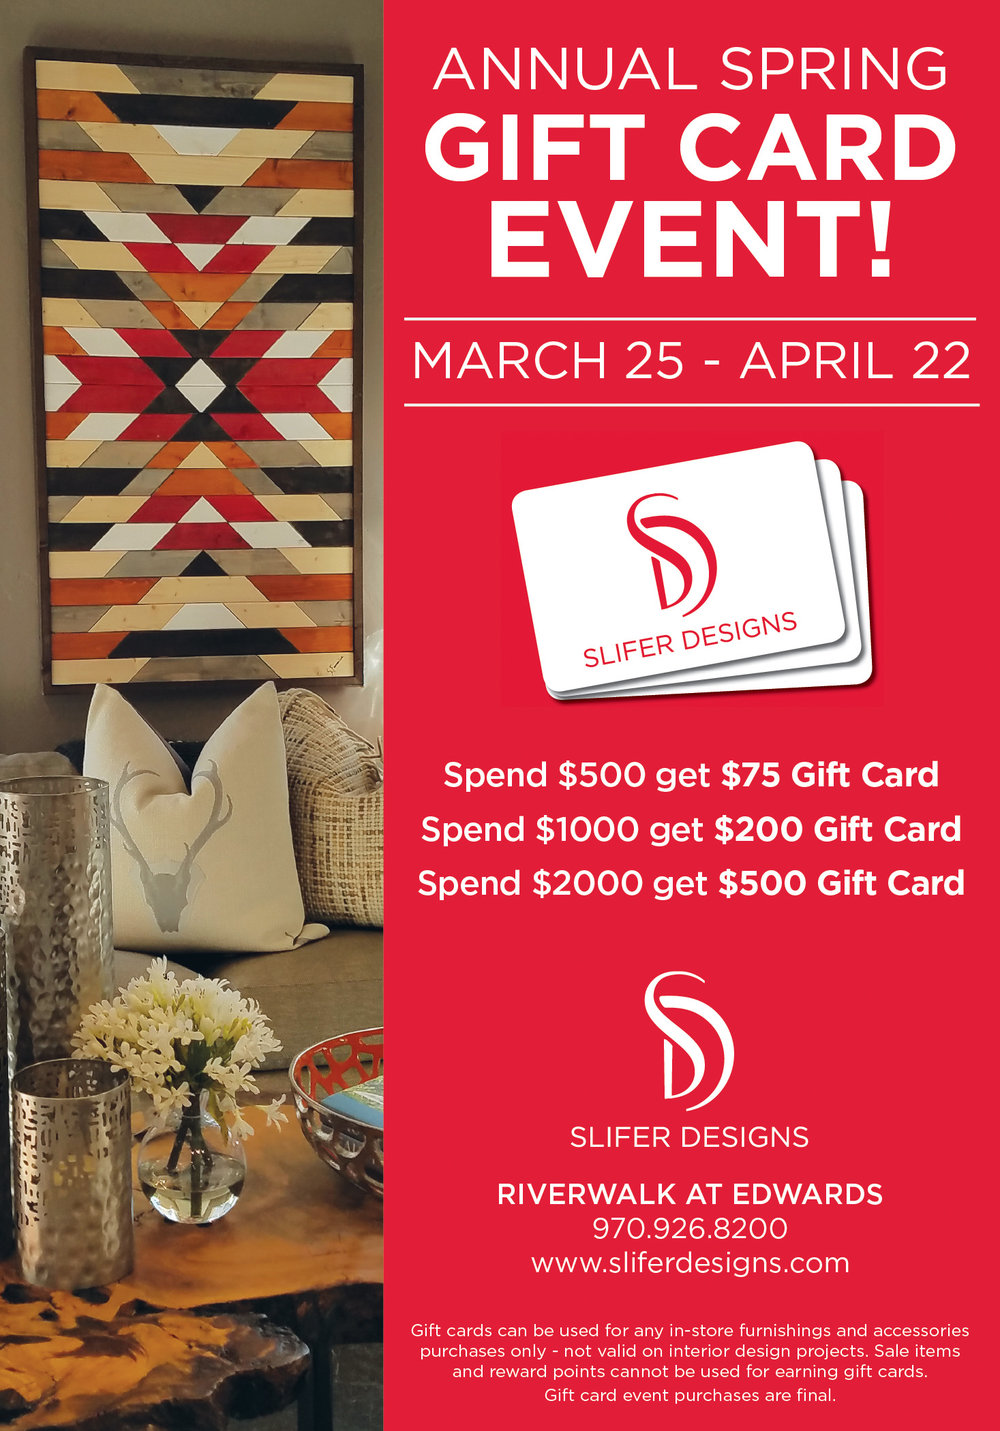 Copy of Slifer Designs Gift Card Event